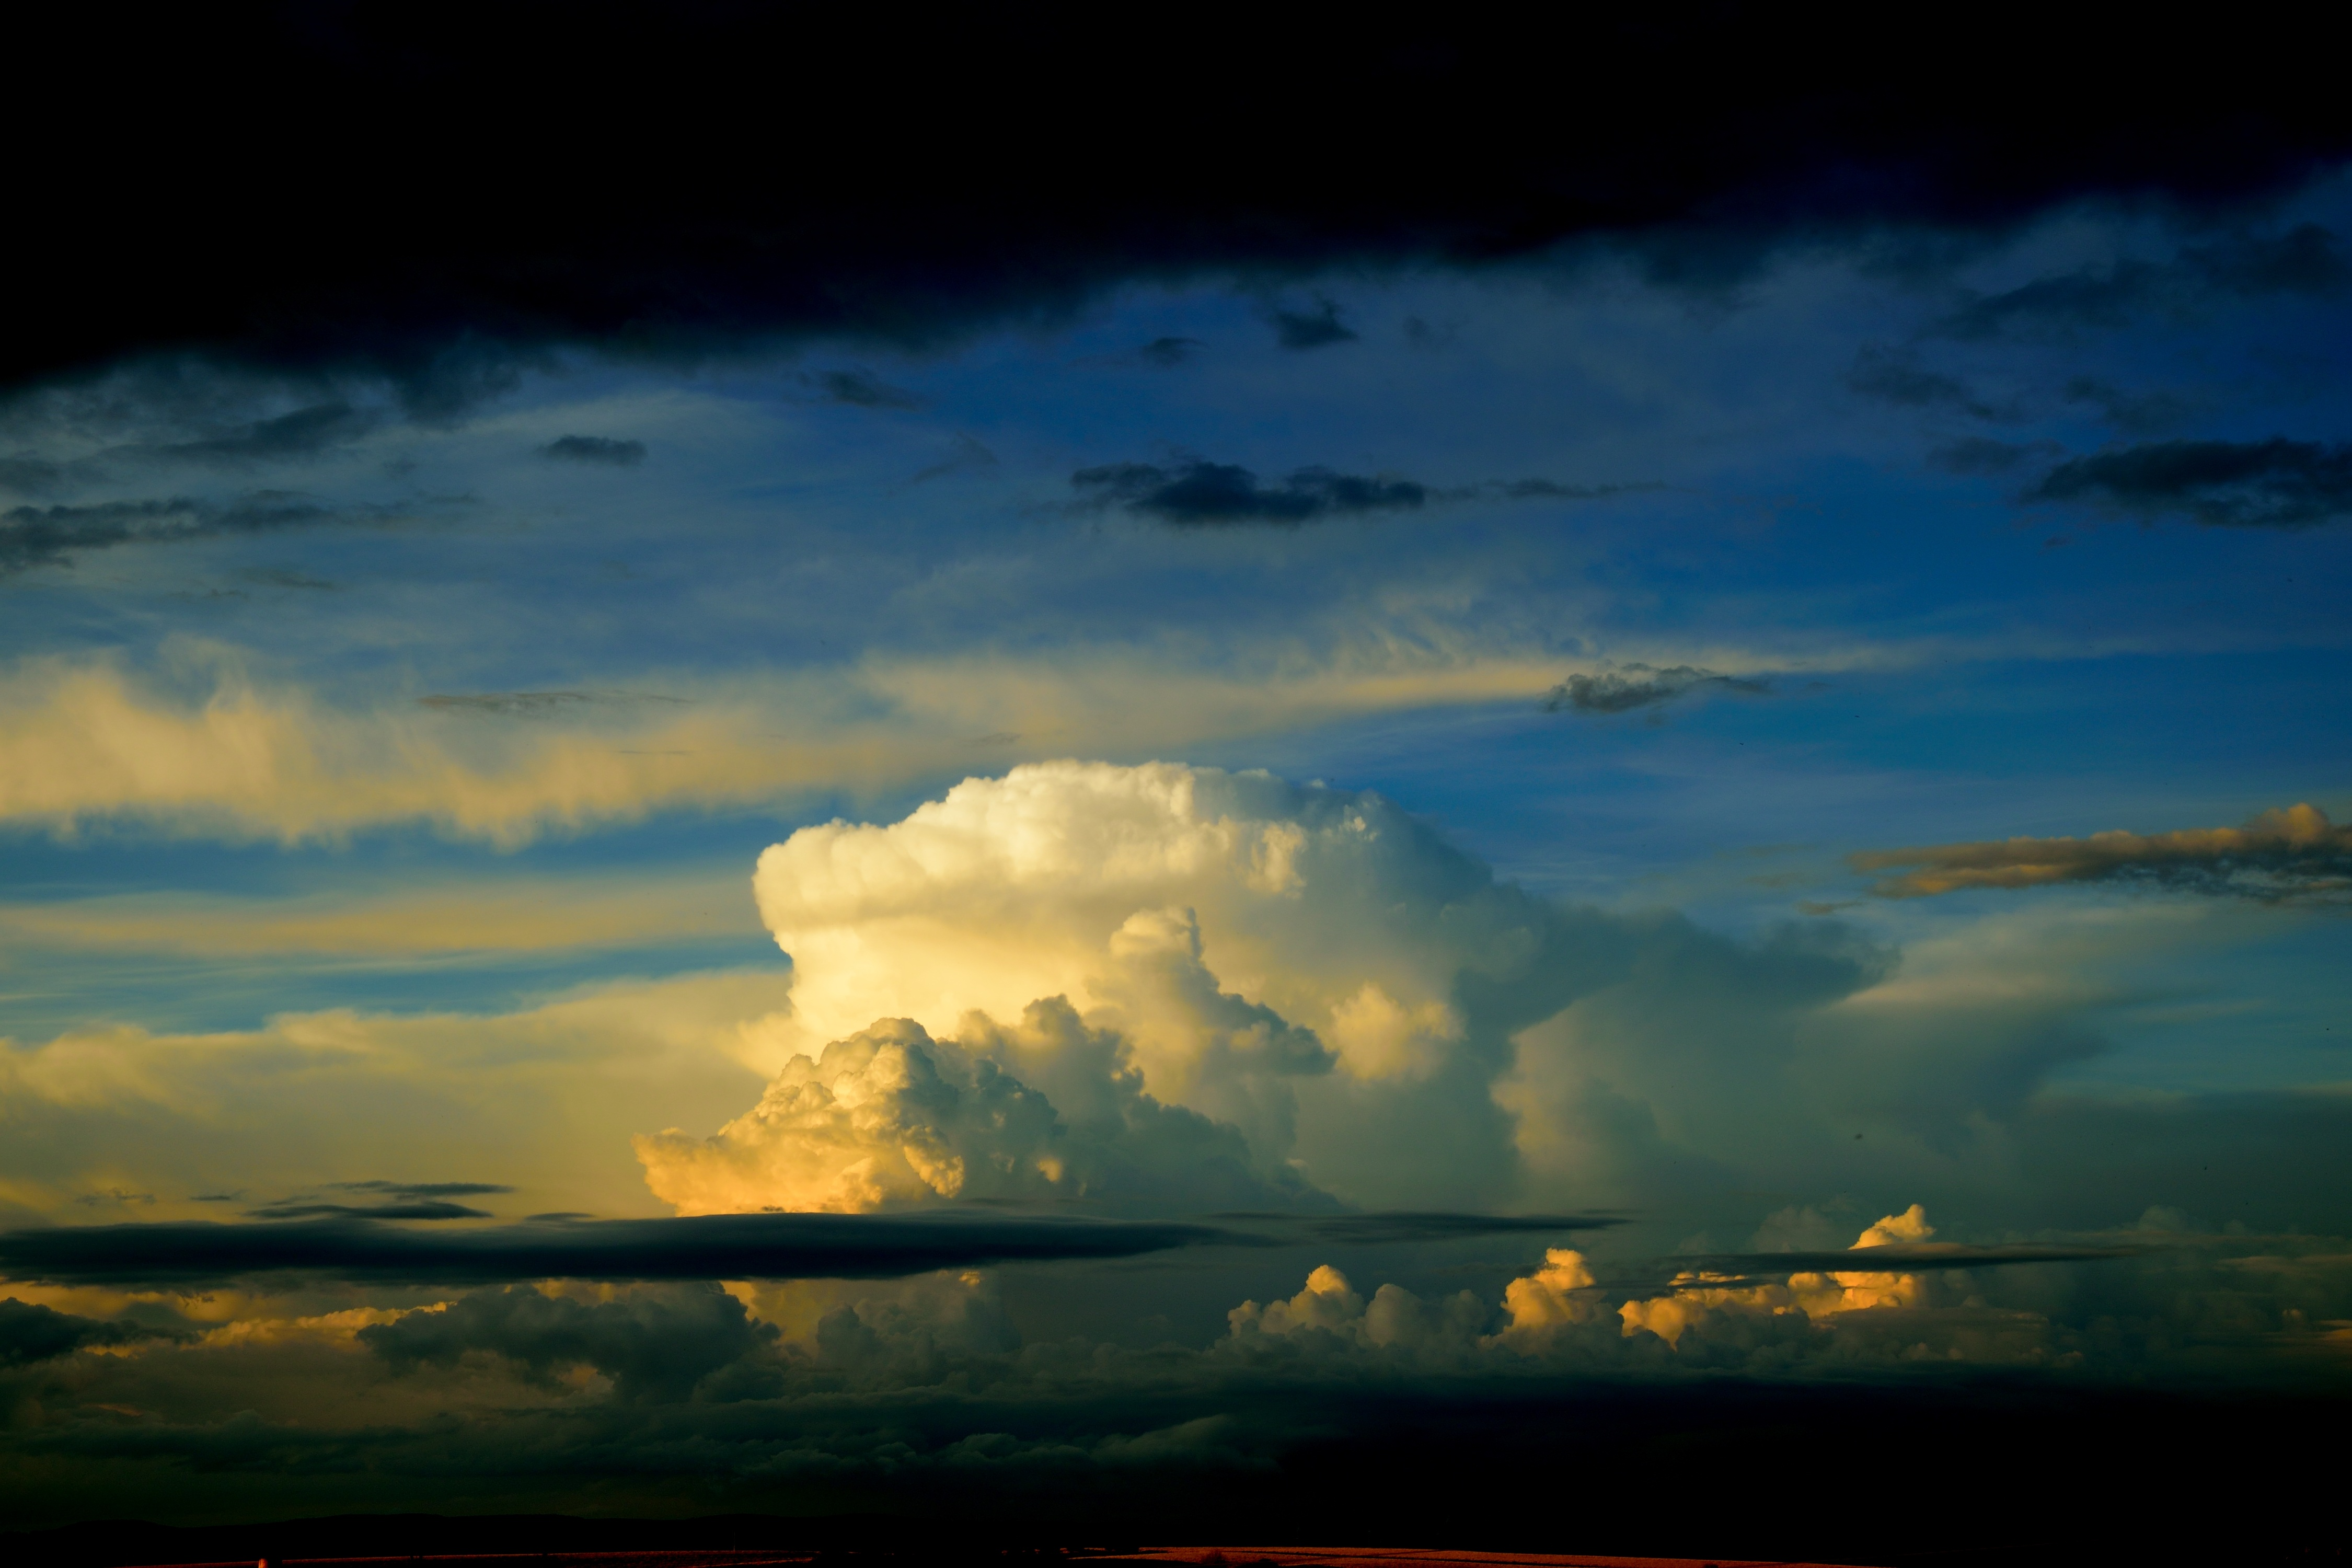 Download wallpapers 4500x3000 sky, clouds, overcast hd backgrounds